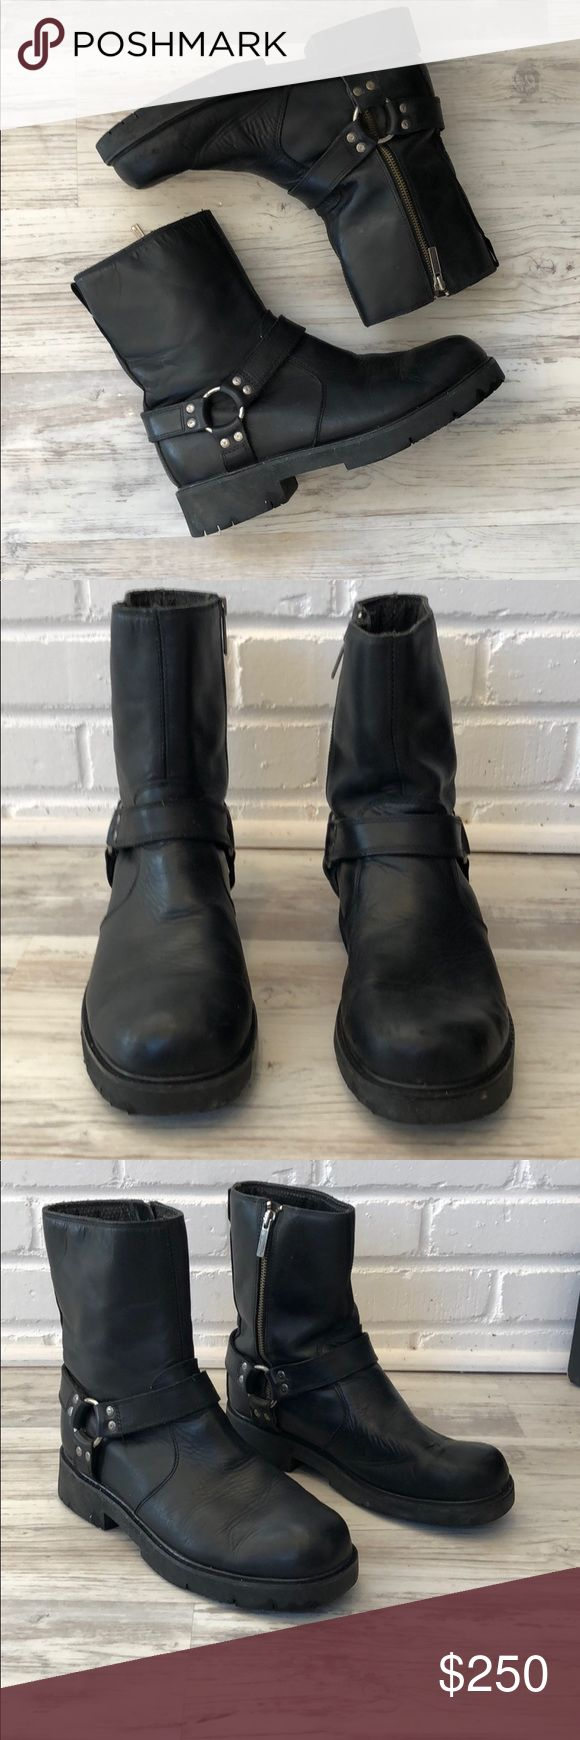 Harley Davidson men's motorcycle boots Men's black leather motorcycle boots from Harley Davidson like new condition  -worn only a couple times or maybe once 😂 -still have plenty of tread on the soul  -got rid of the motorcycle still have the boots  -need to get rid of the boots Harley-Davidson Shoes Boots